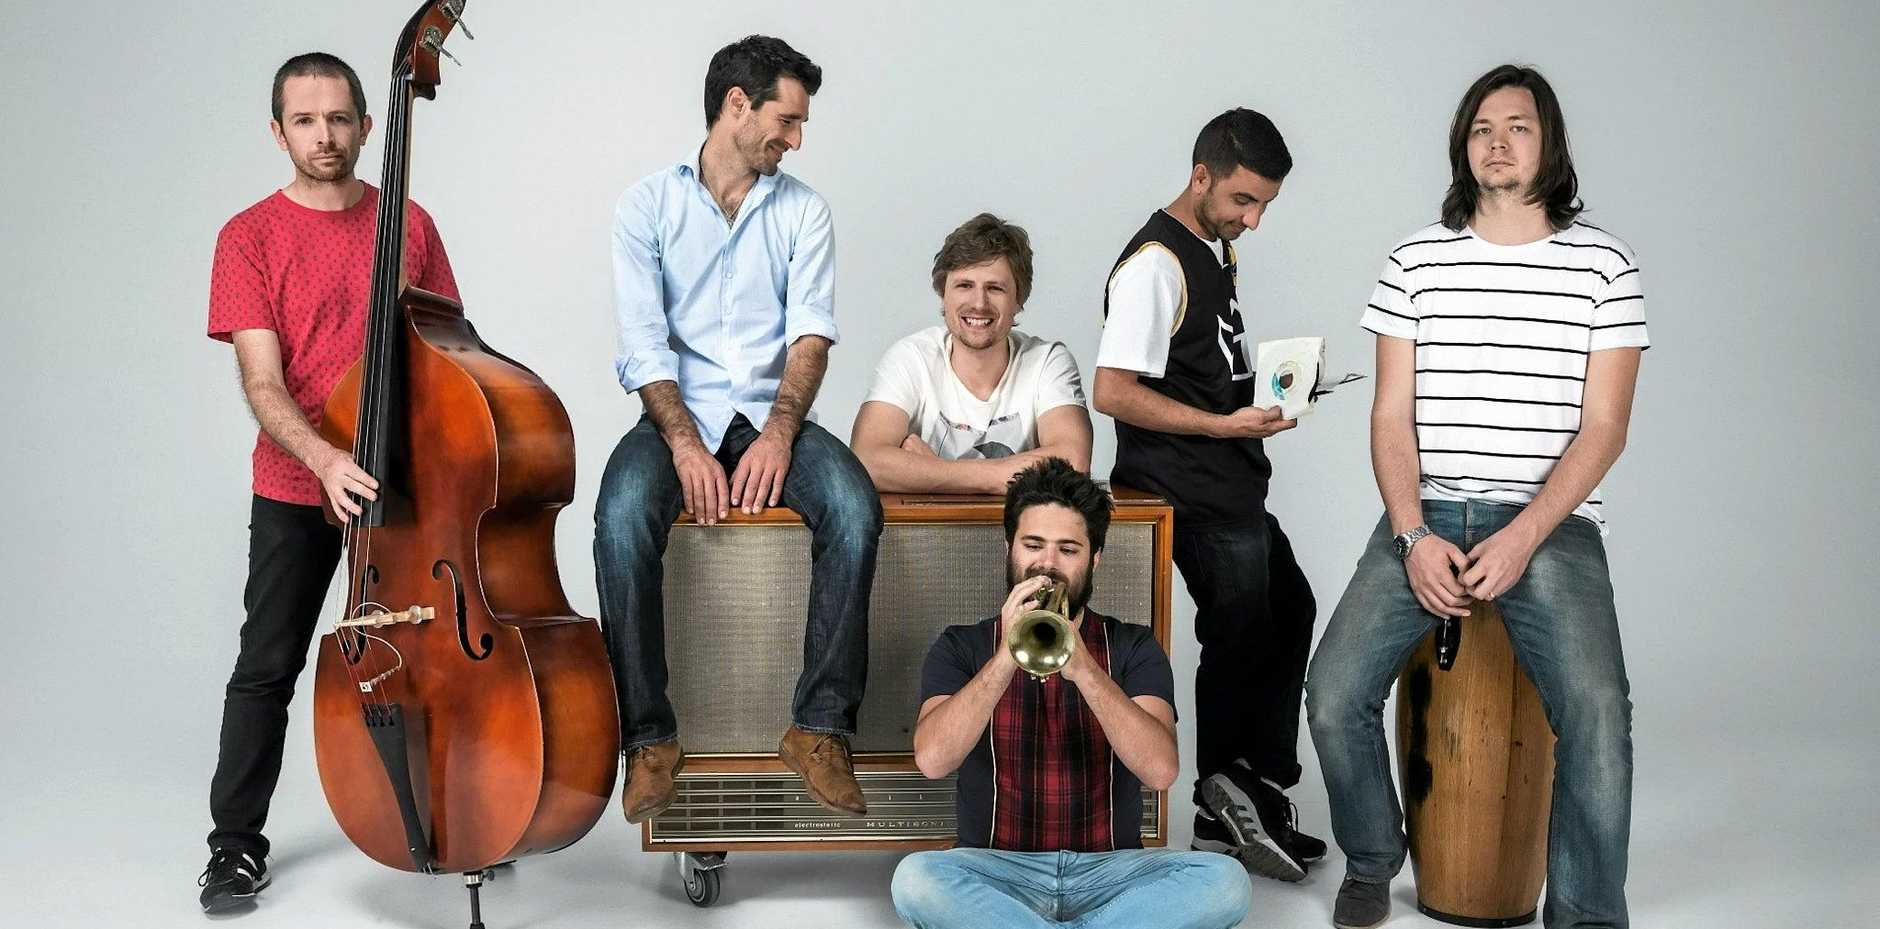 COMING UP: The Cat Empire is an Australian ska and jazz band formed in 1999 coming to Bluesfest 2016.